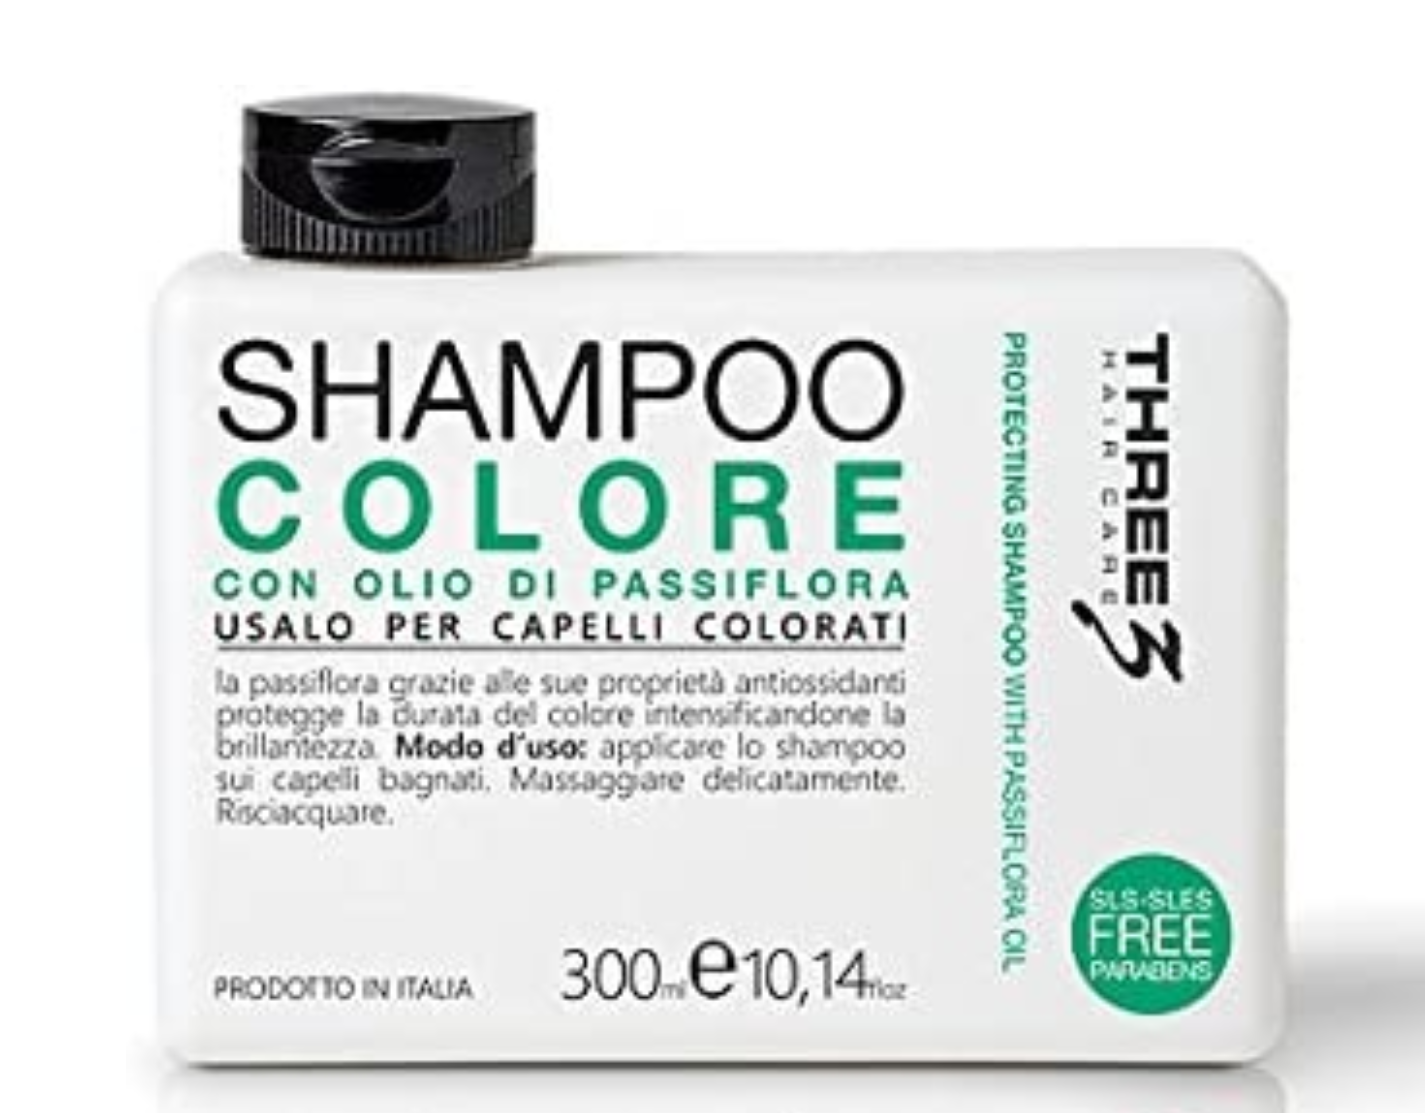 Shampoing colore